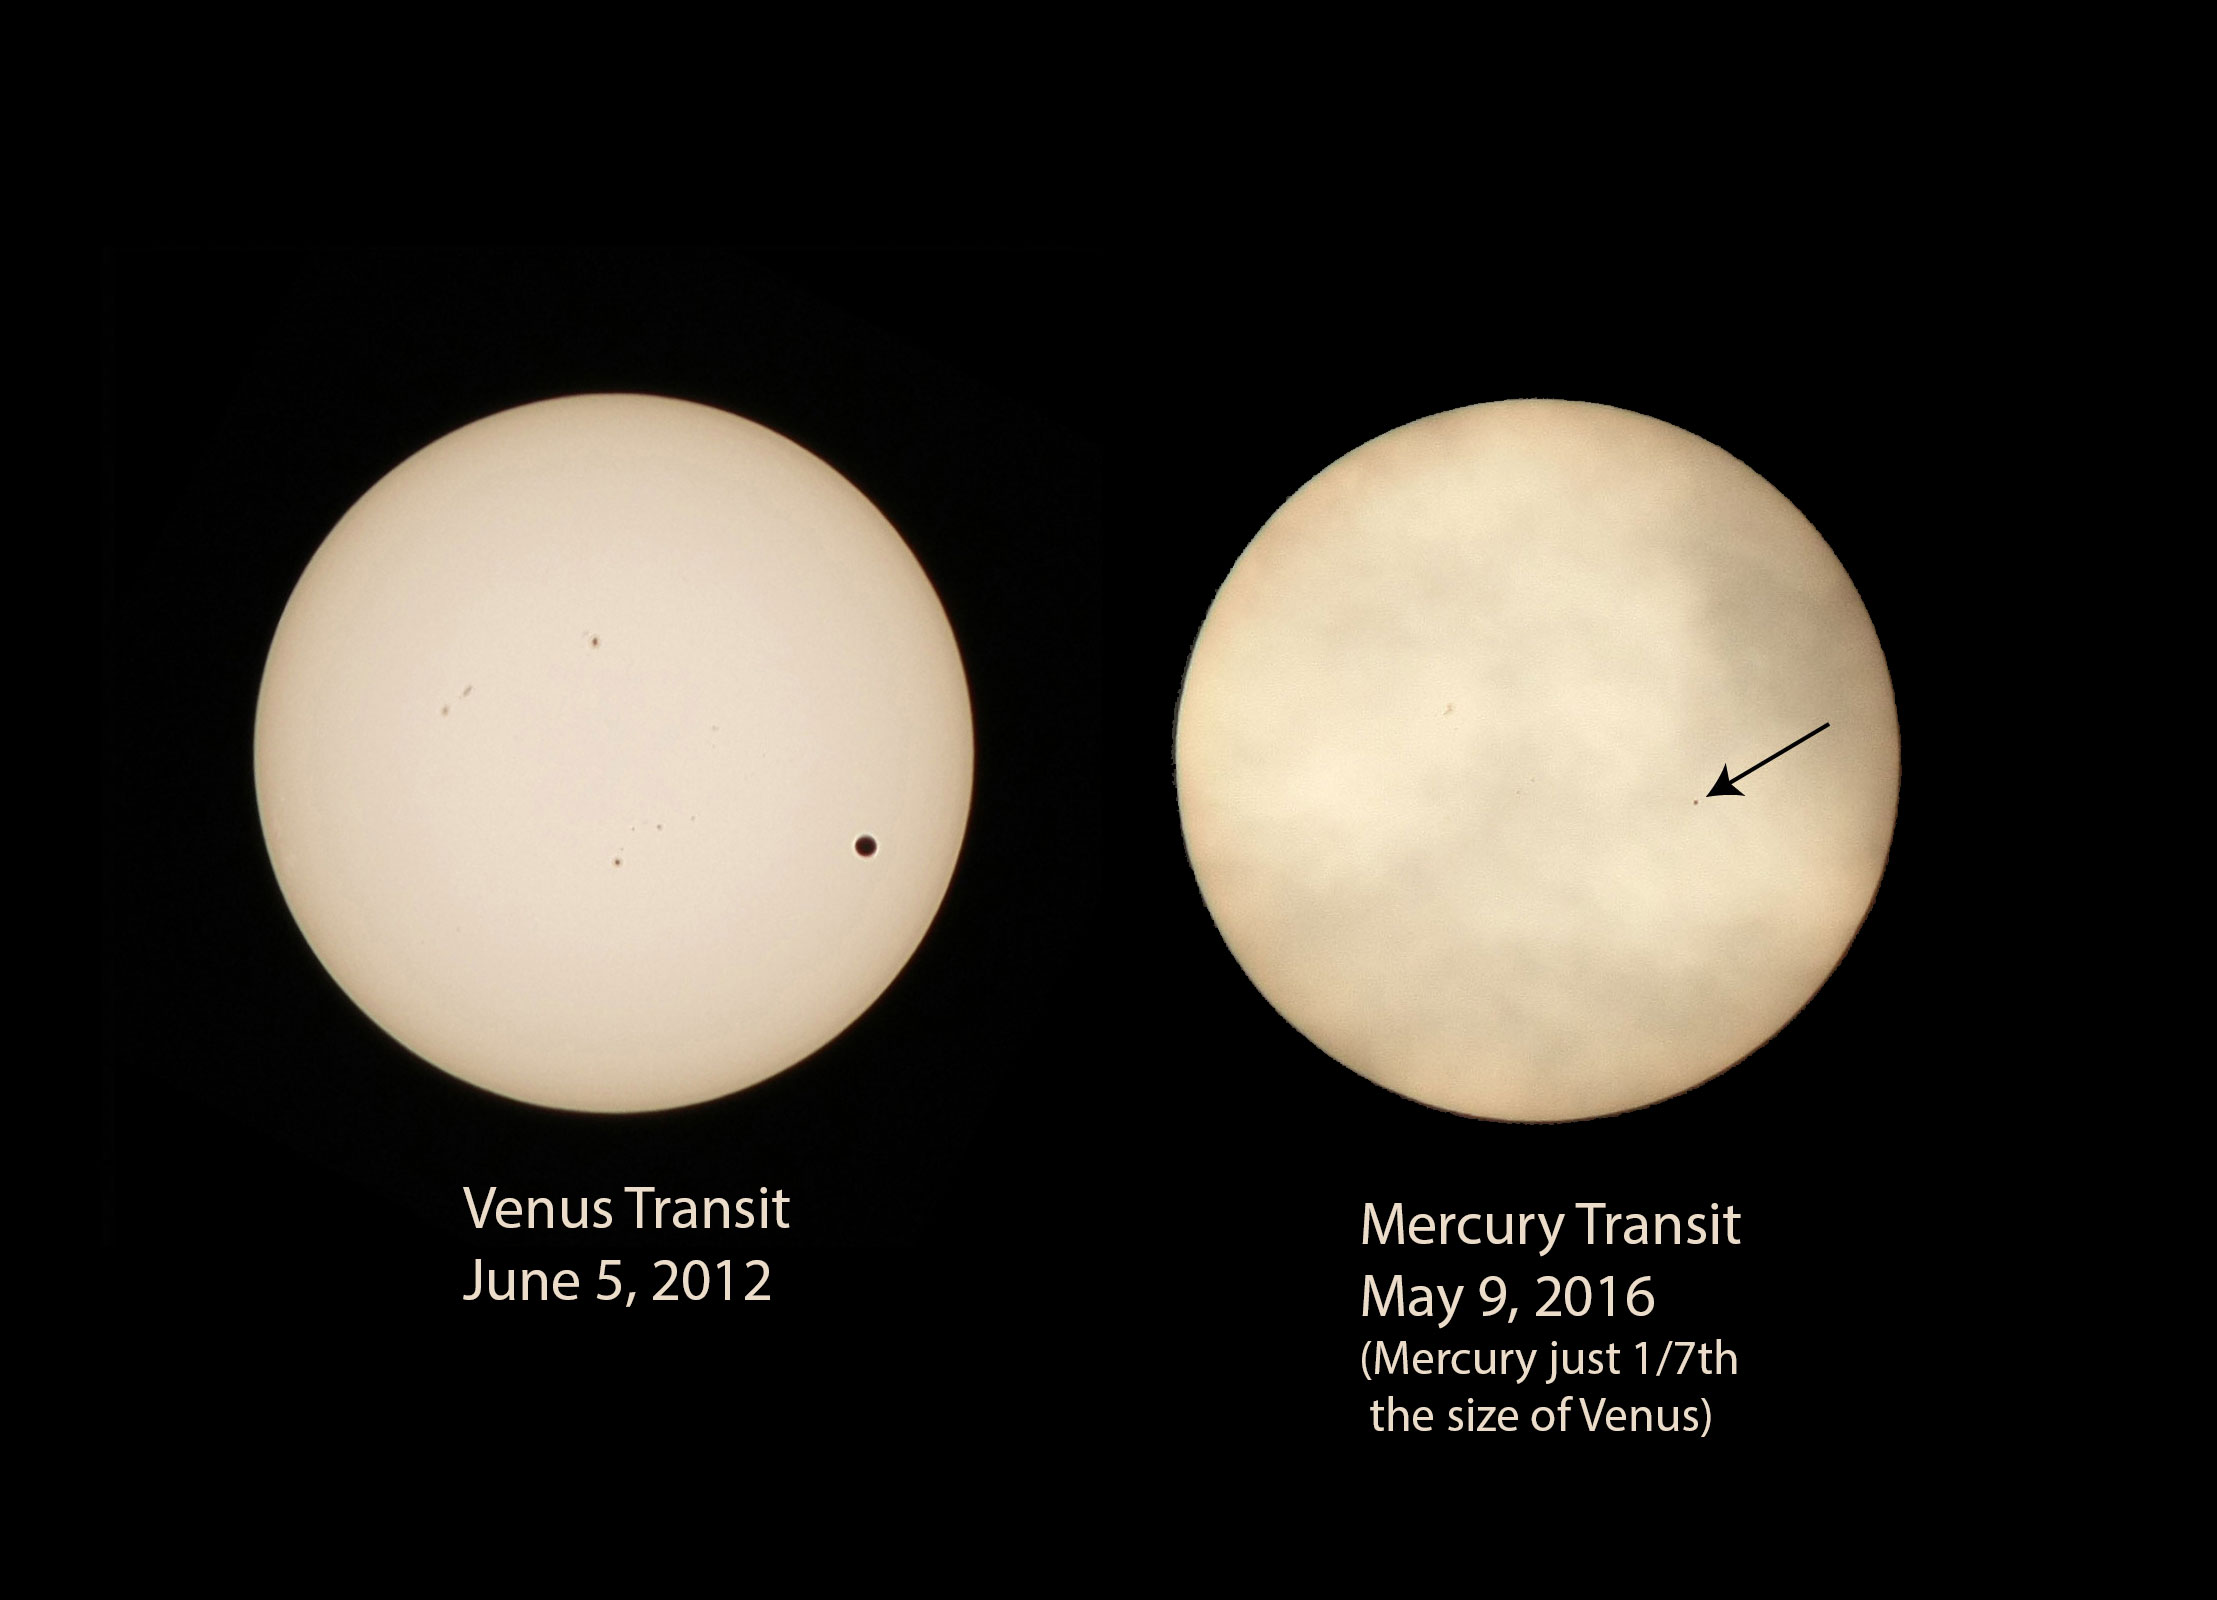 Comparison of Venus transit 2012 and Mercury transit 2016